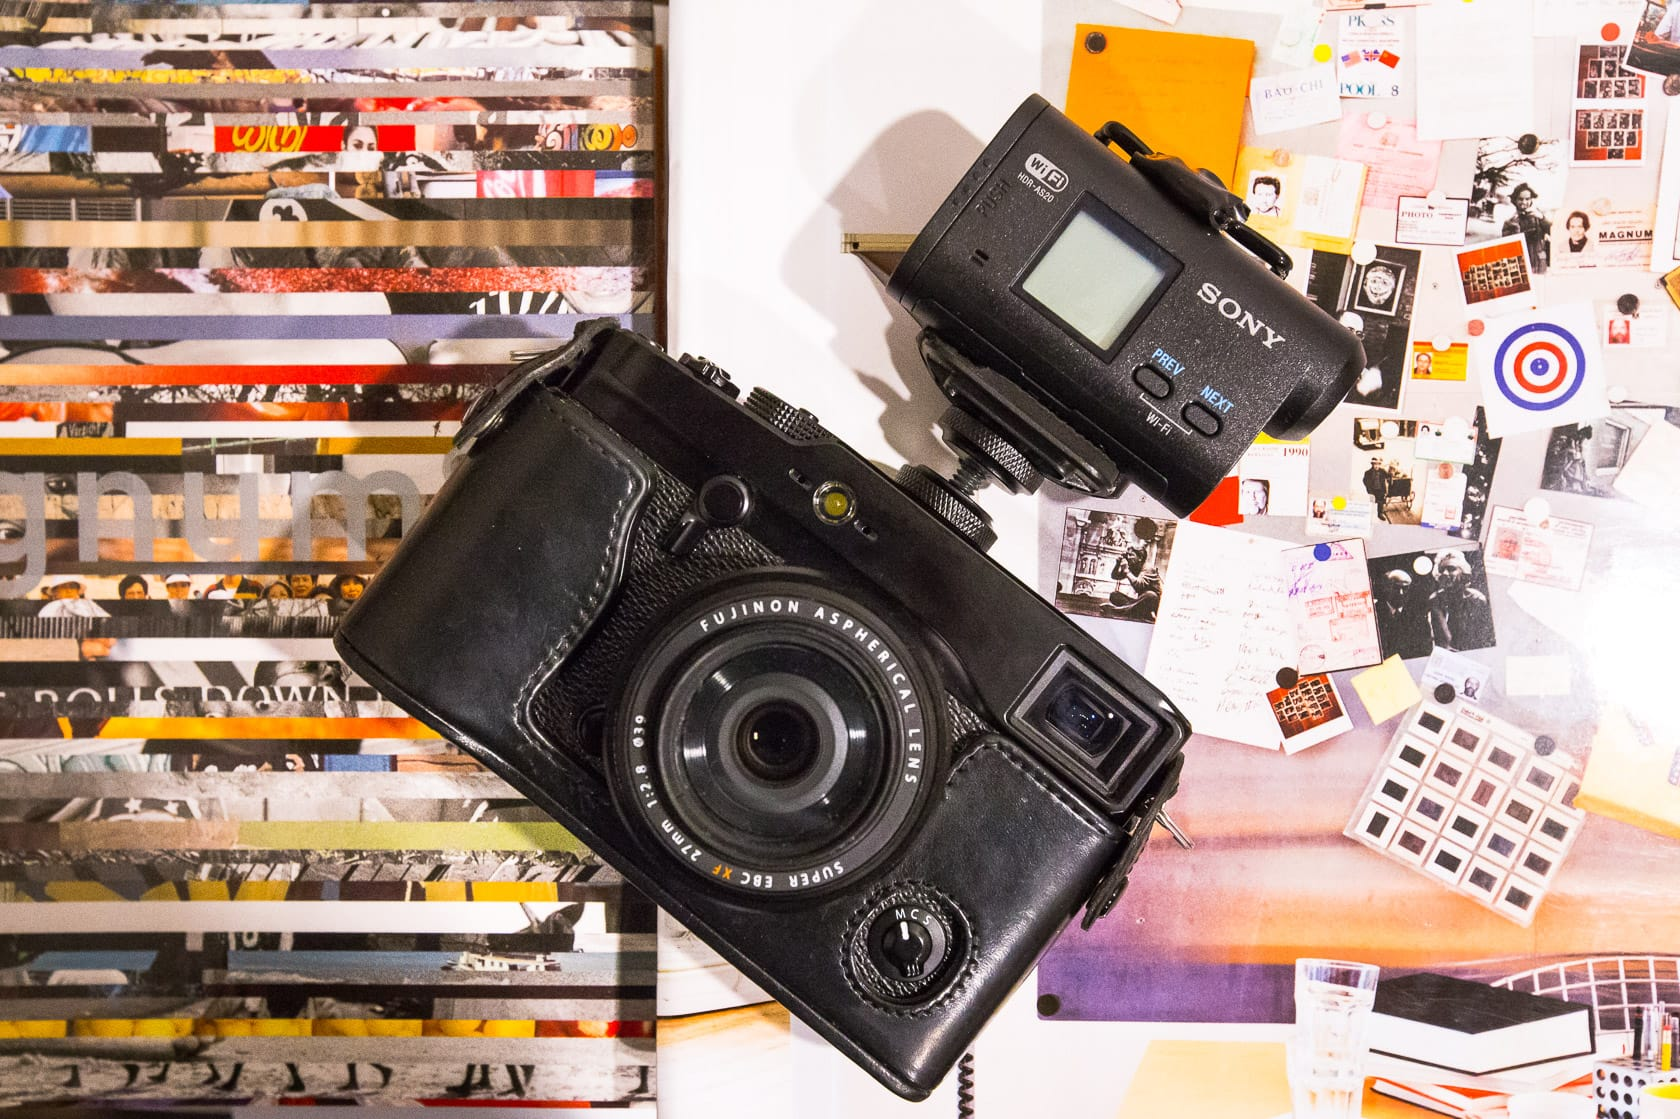 The Fuji X-Pro1 & Sony Cam is one of the best Street Photography Vlogging Action Camera setups